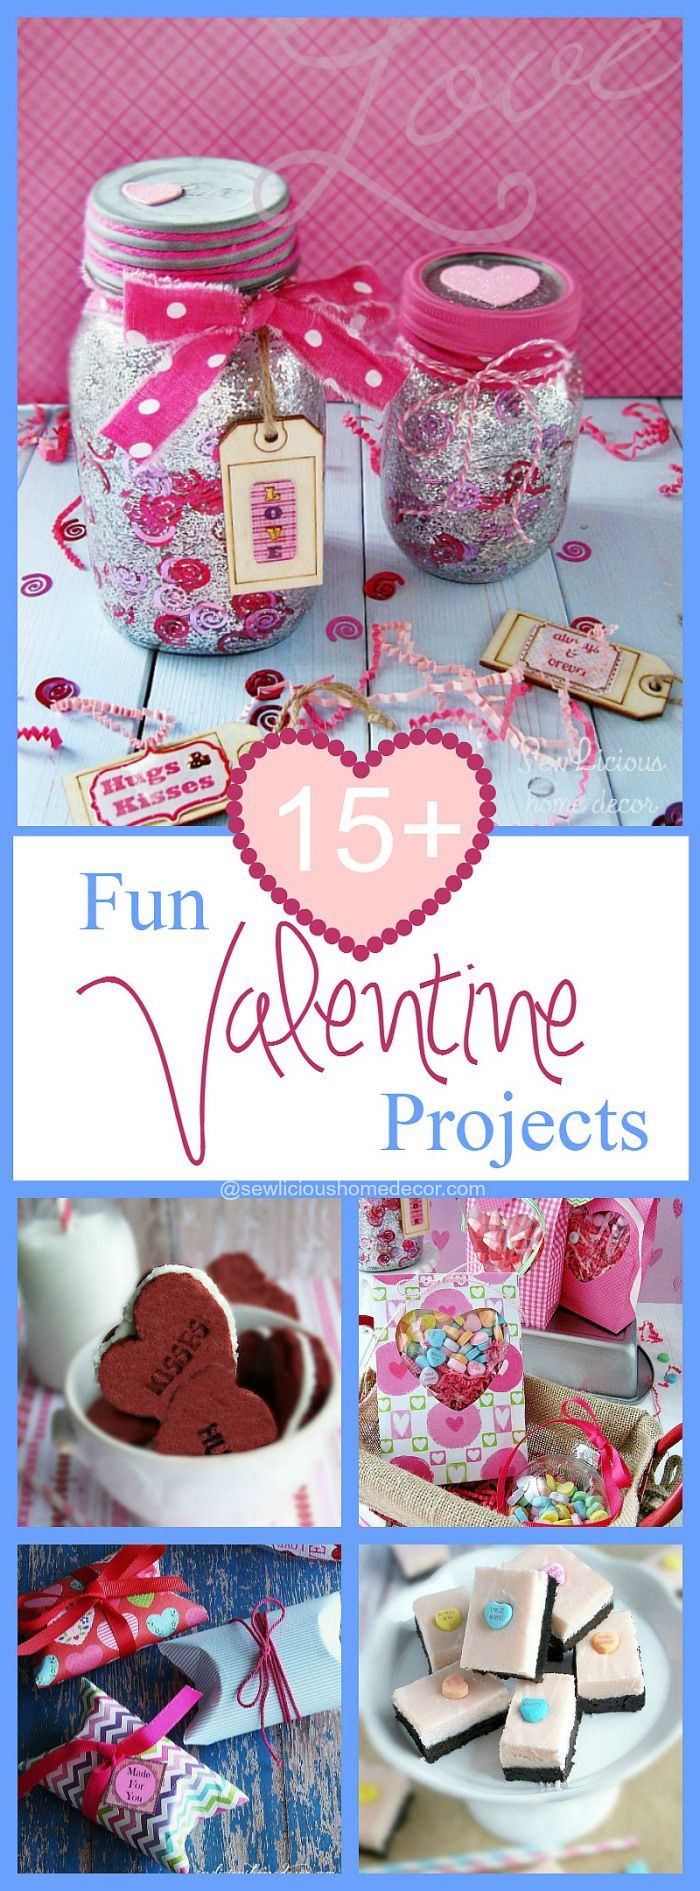 15 Fun Valentine Projects To Make at sewlicioushomedecor.com